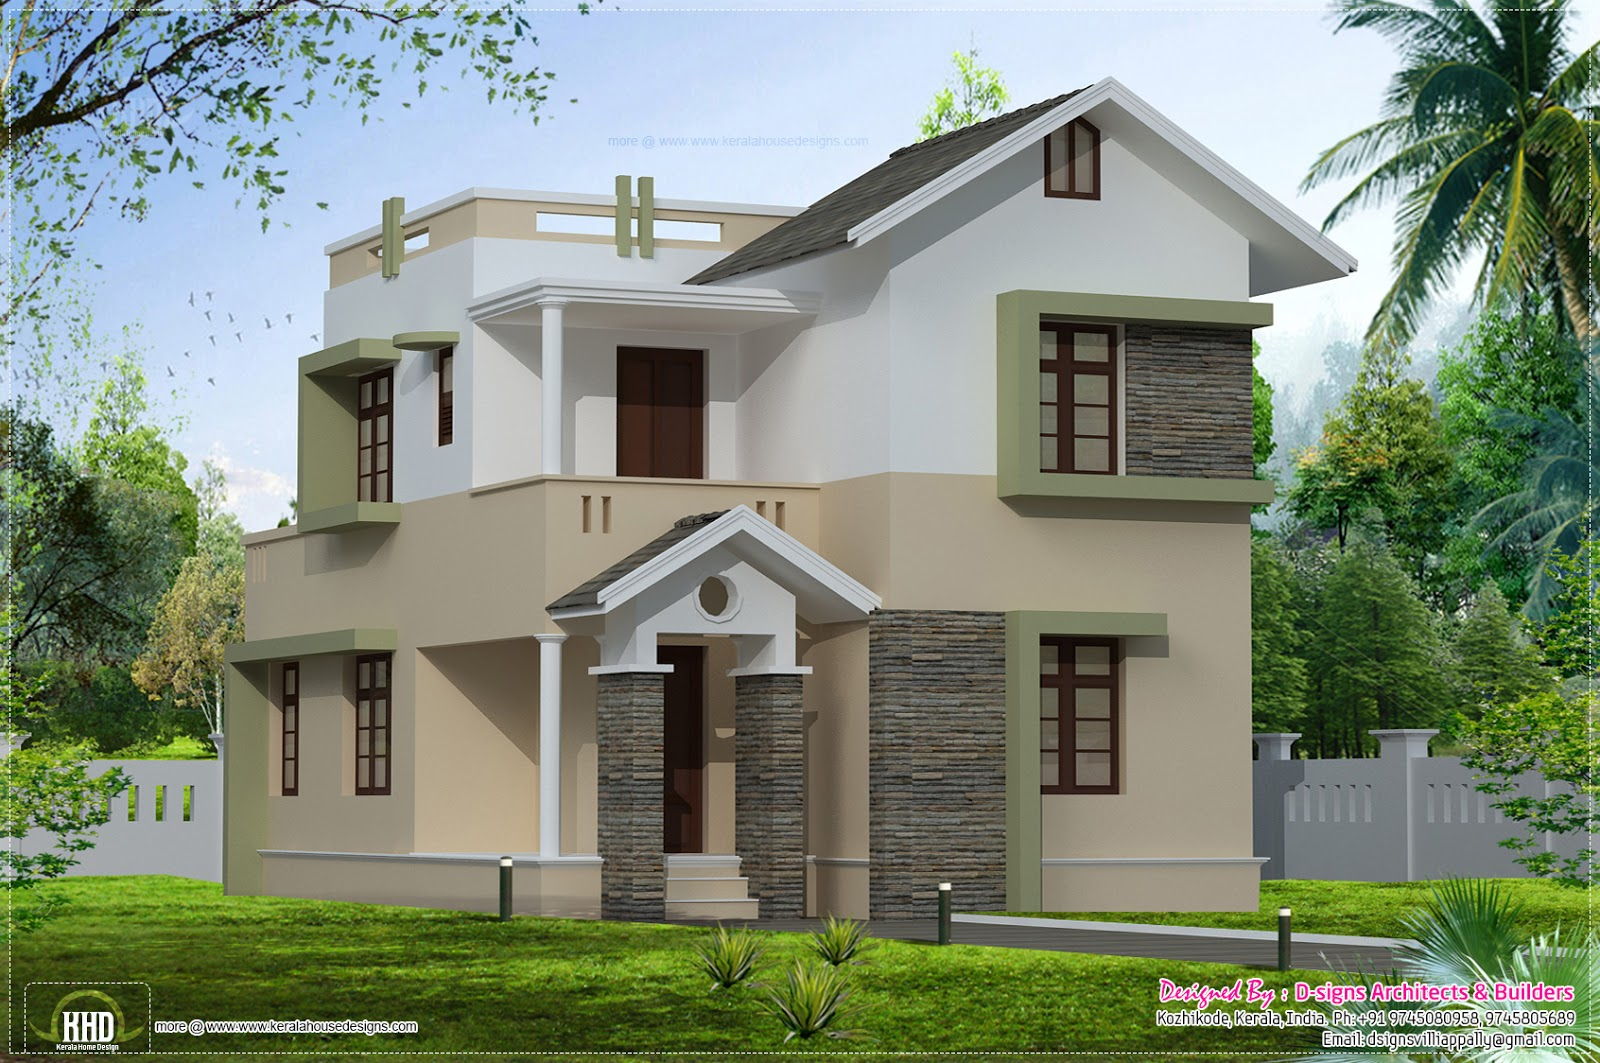 Small villa house plans amazing house plans small villa plan 12717 small villa house plans